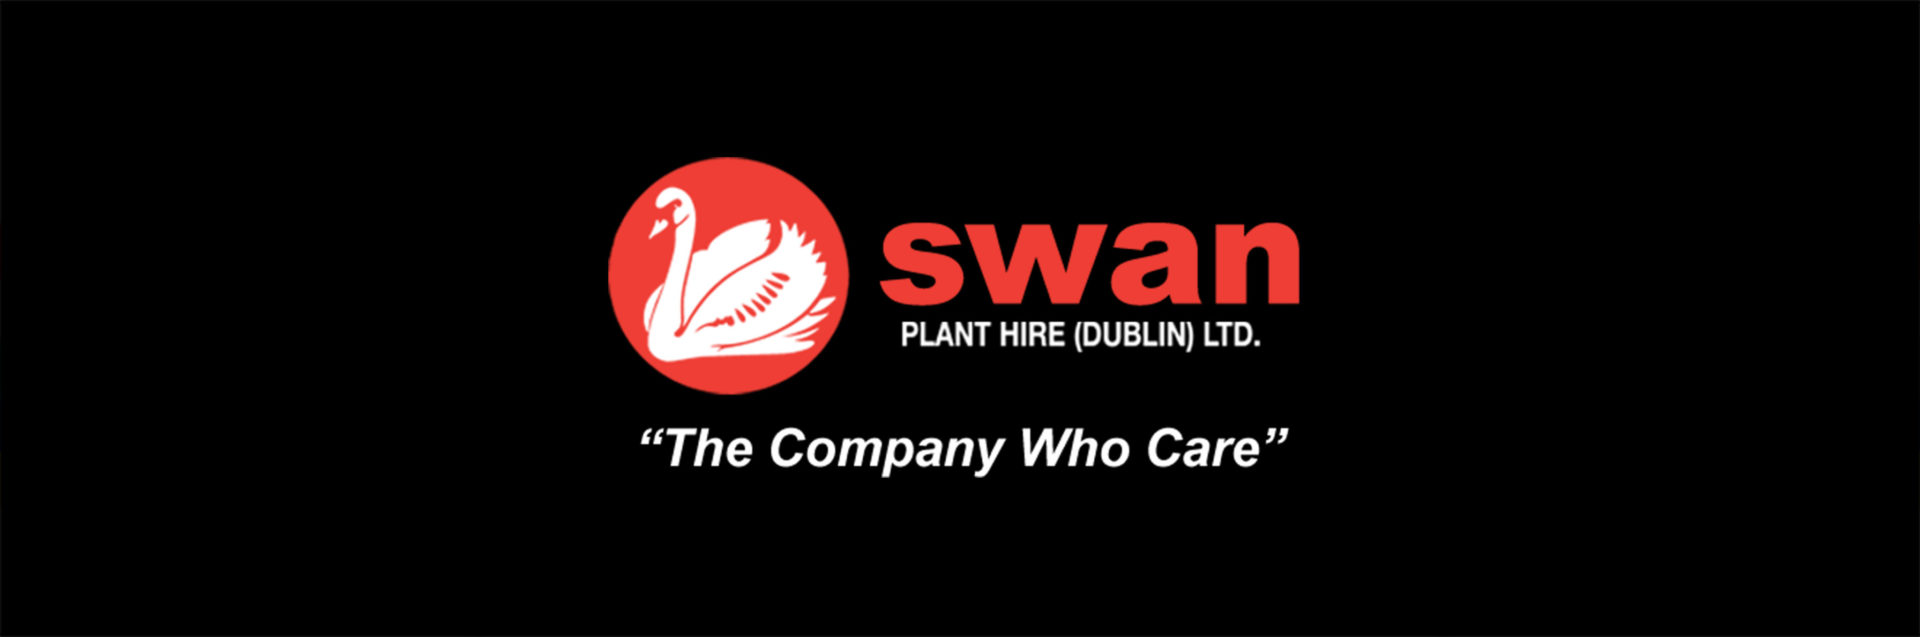 LOXAM annonce l'acquisition de Swan Plant Hire